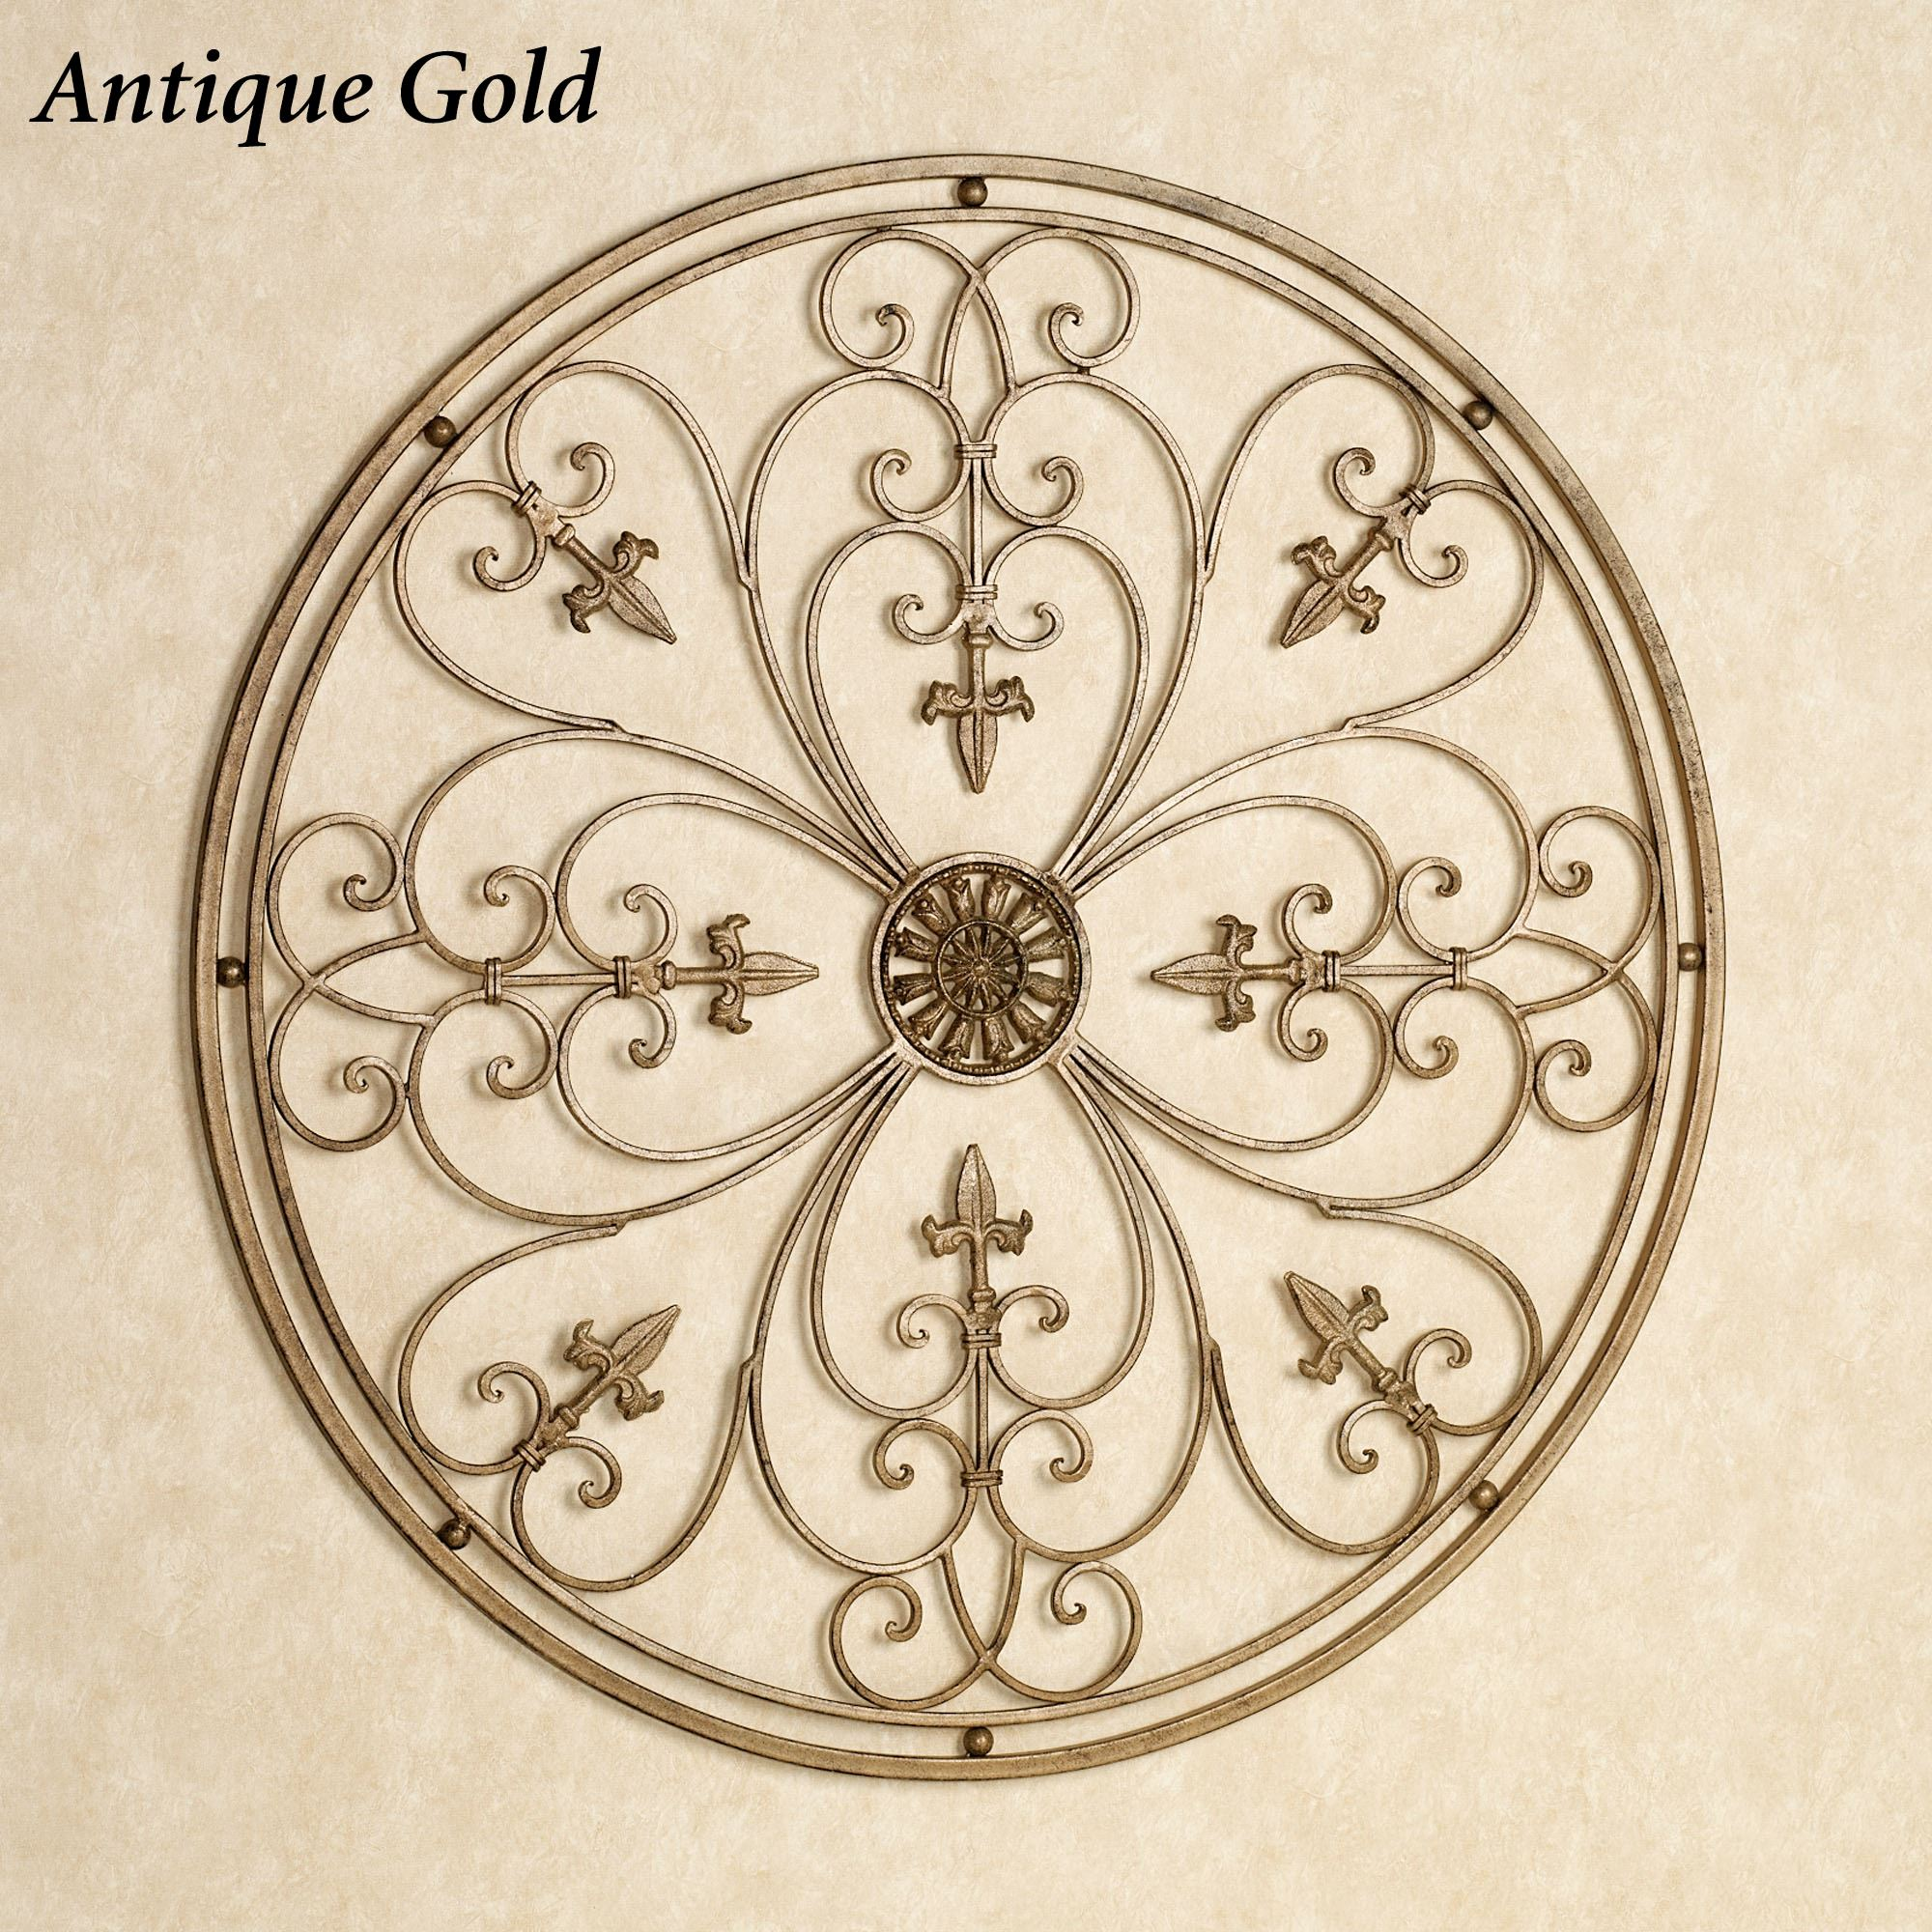 Wrought Iron Wall Grille Ravenna Round Wrought Iron Wall Grille